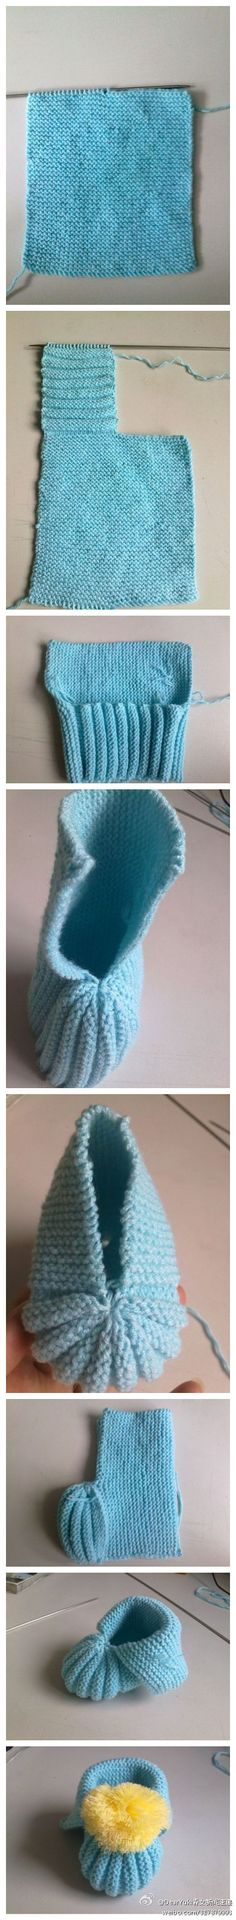 Easy Baby Bootees - knitting Do this on crochet